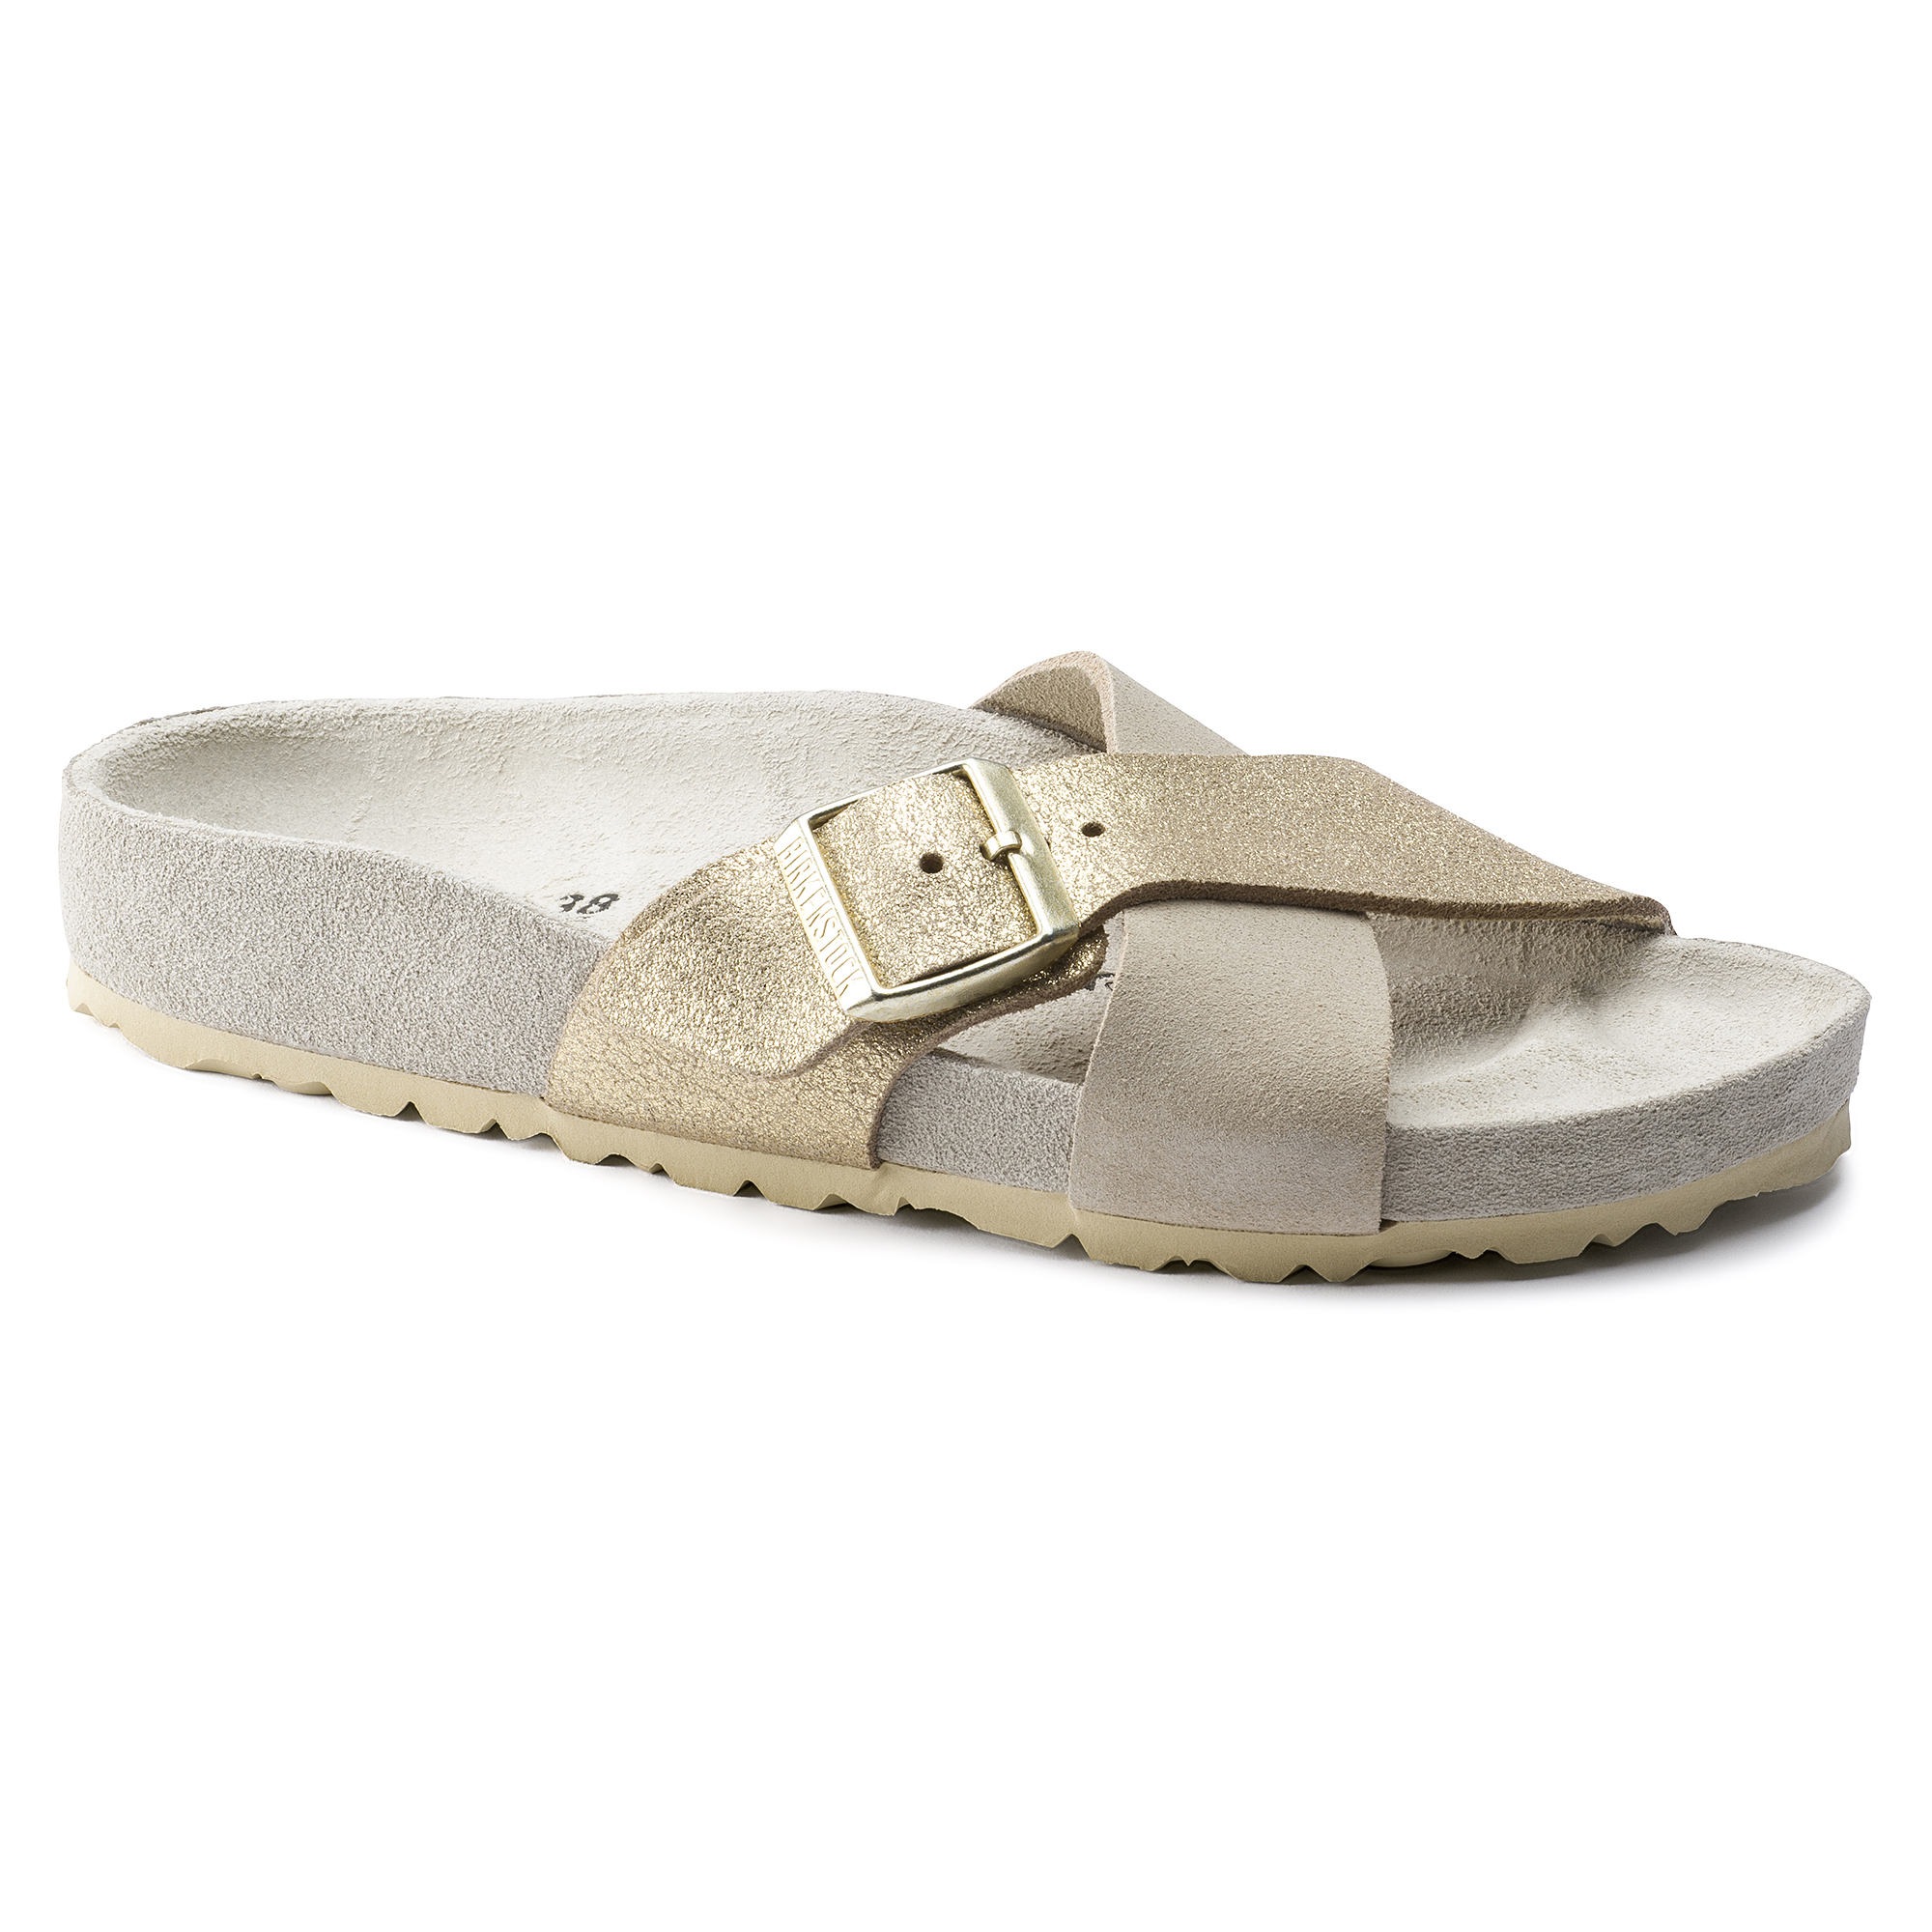 Siena Suede Leather Allover Taupe